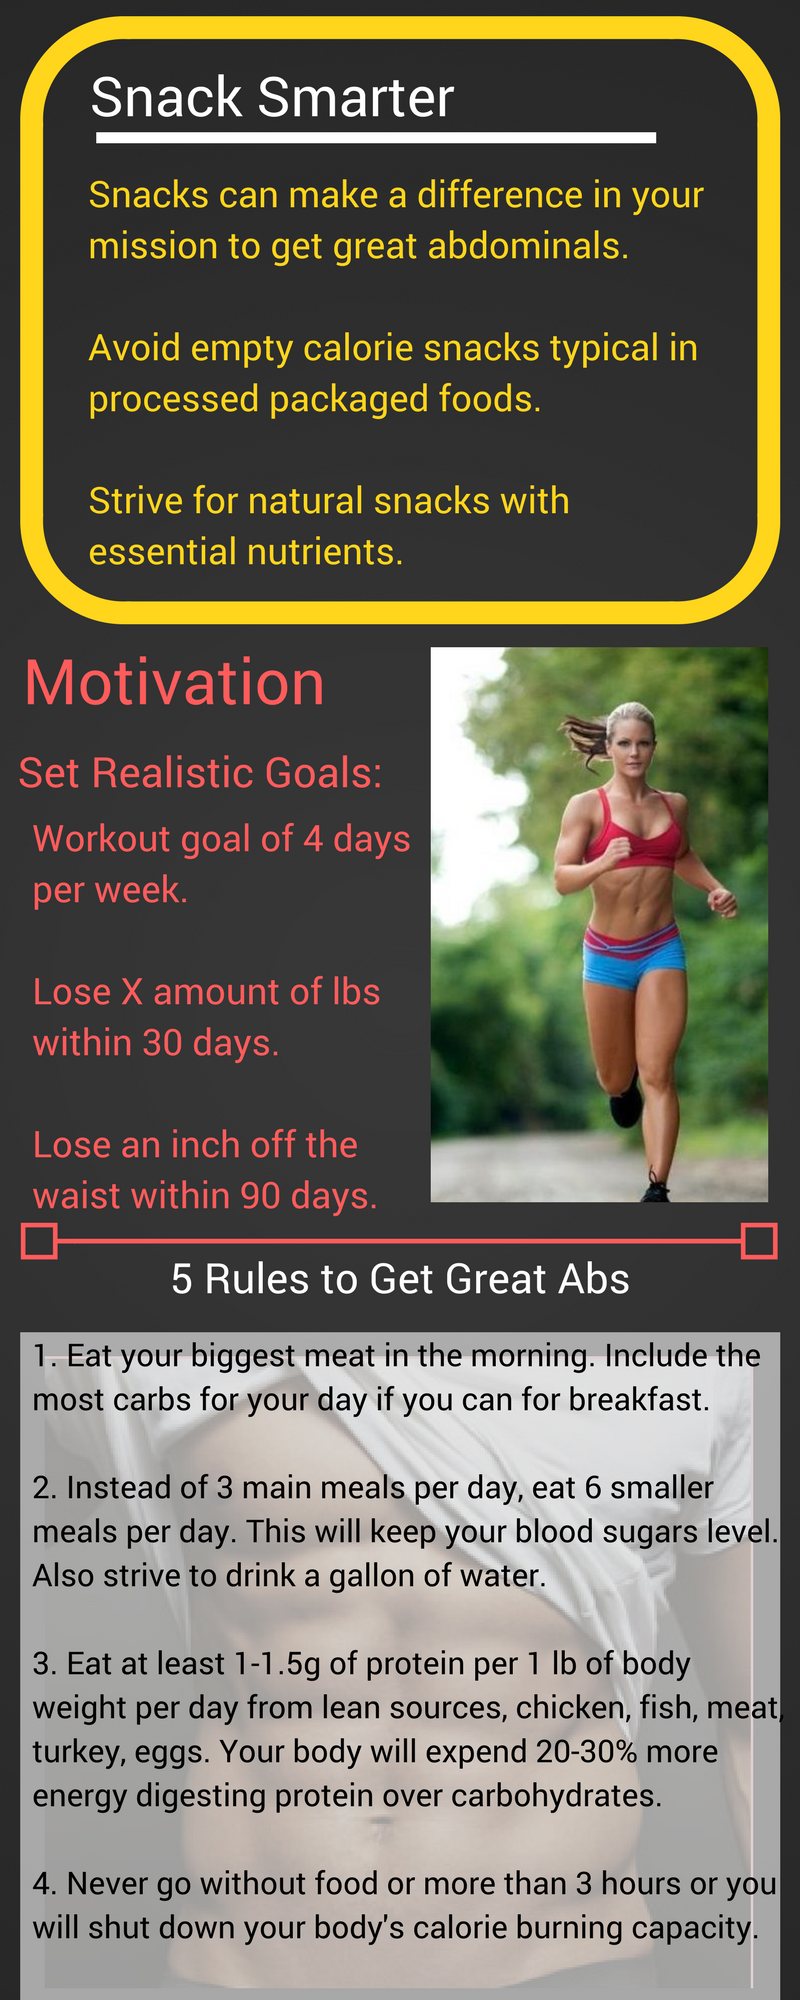 Mission Abdominals 4 - Motivation